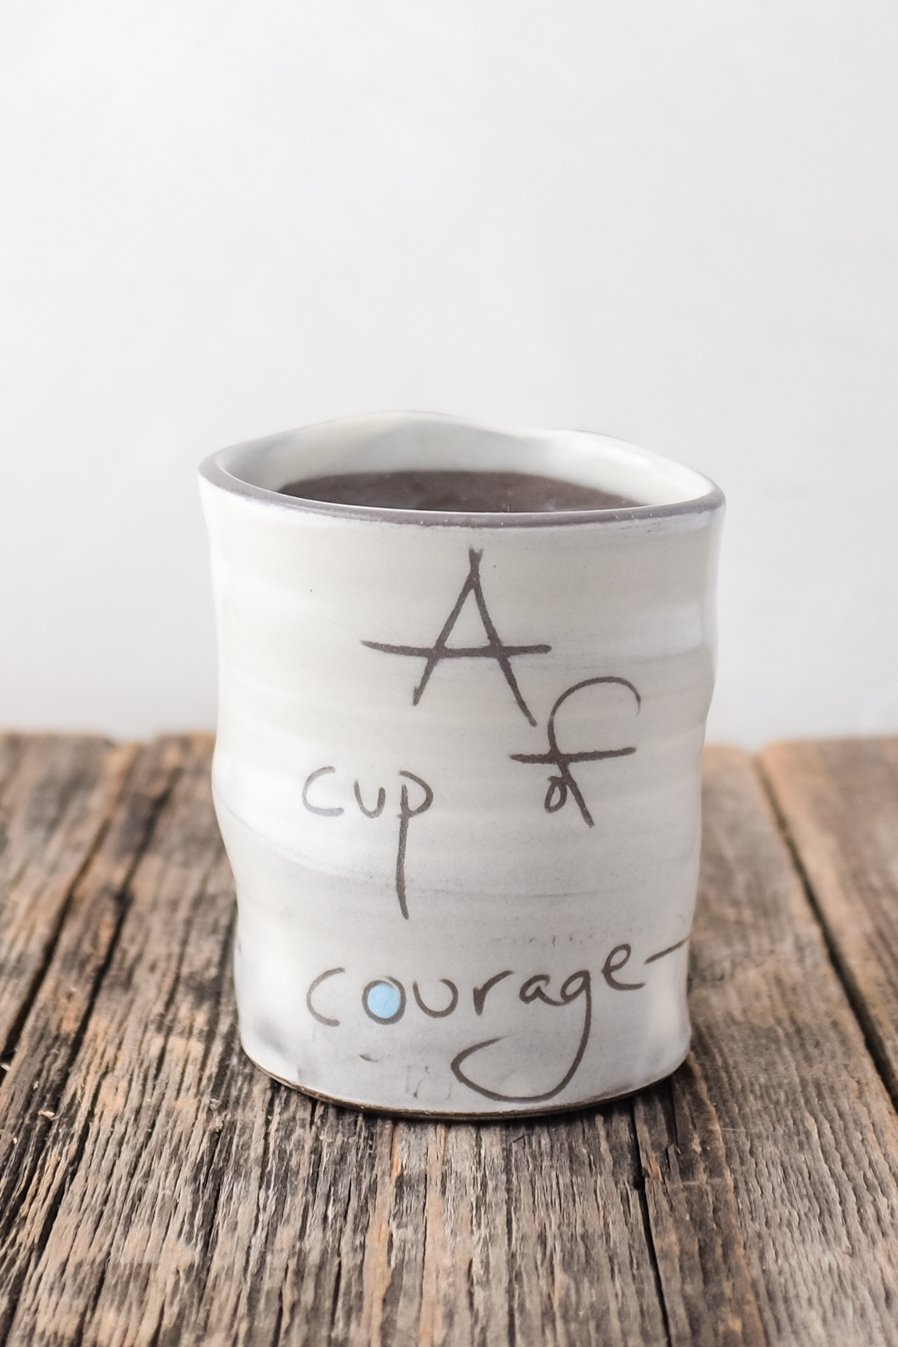 A cup of Courage